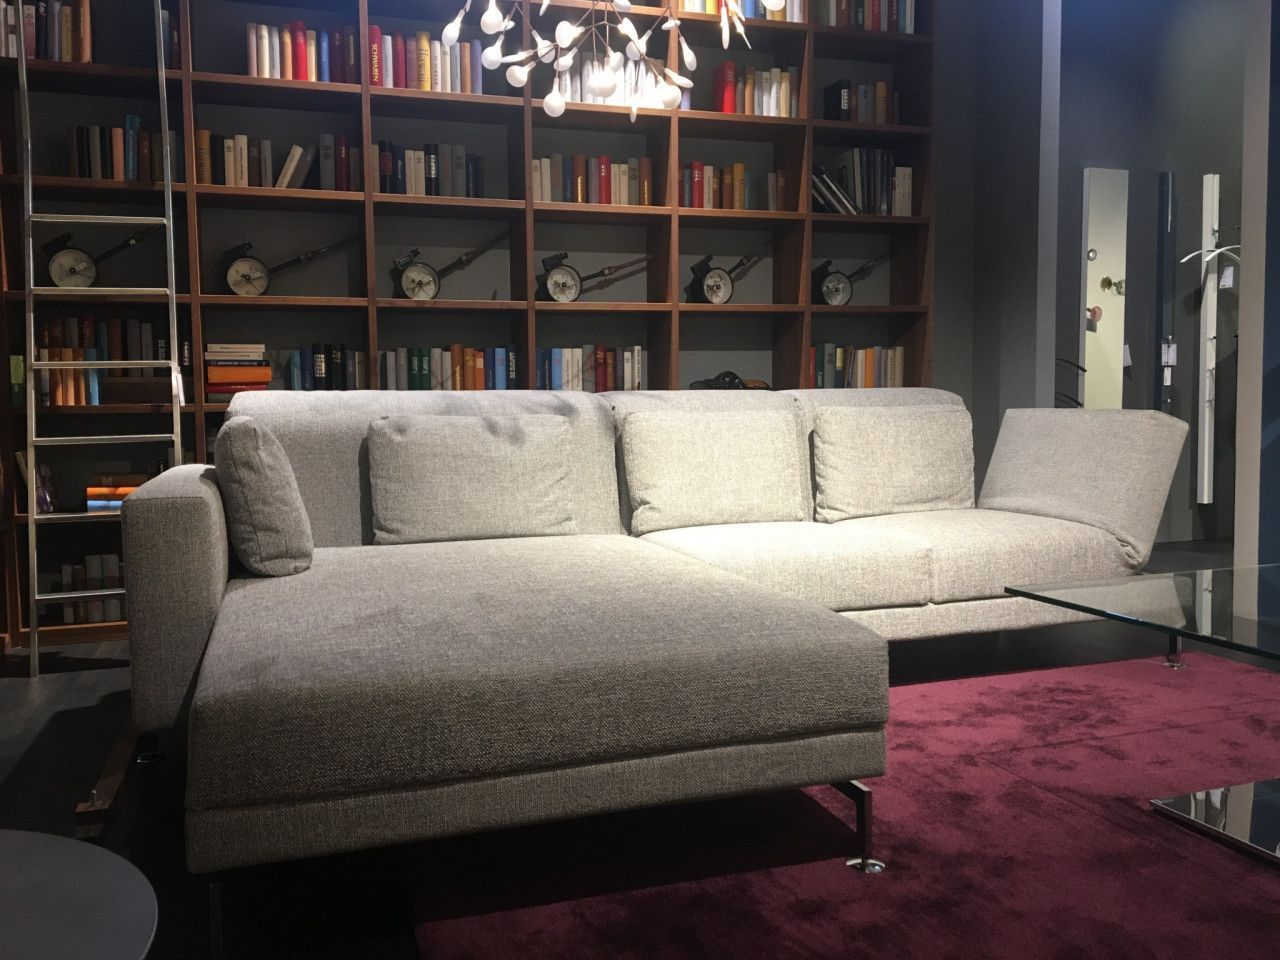 Sofa Moule Von Brühl In Stoff Grau Einrichtung Designermöbel Couch Lifestyle Homedecor Interior Interiordesign Wohnzi Home Decor Regal Einrichtung